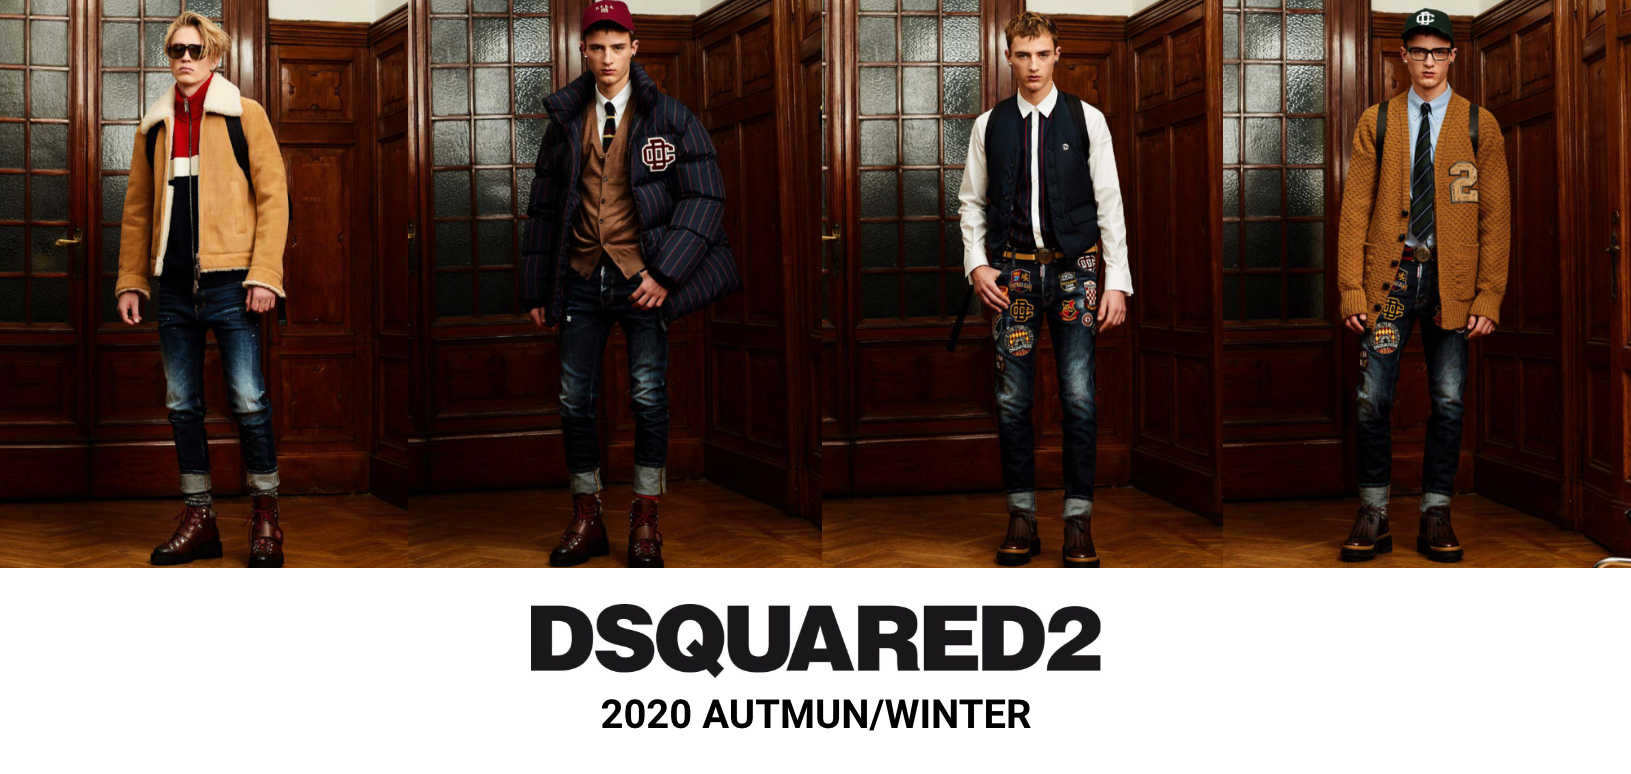 DSQUARED2 POP-UP STORE